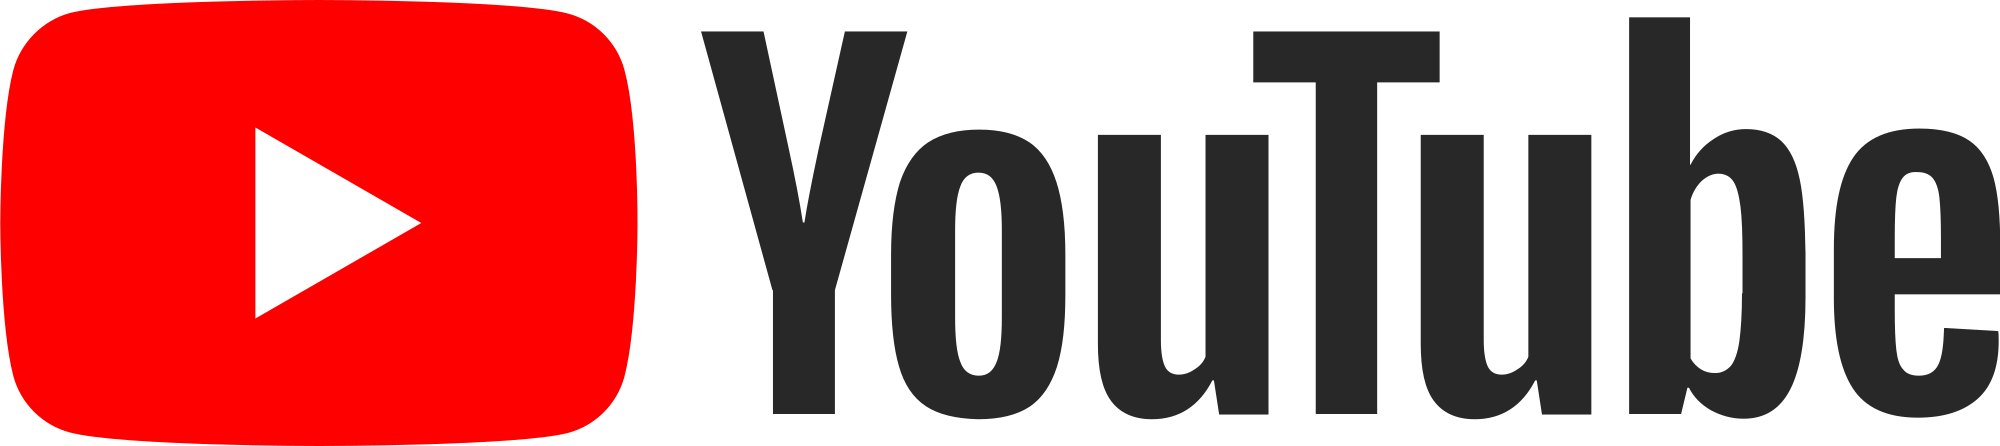 Youtube logo png. File of svg wikimedia